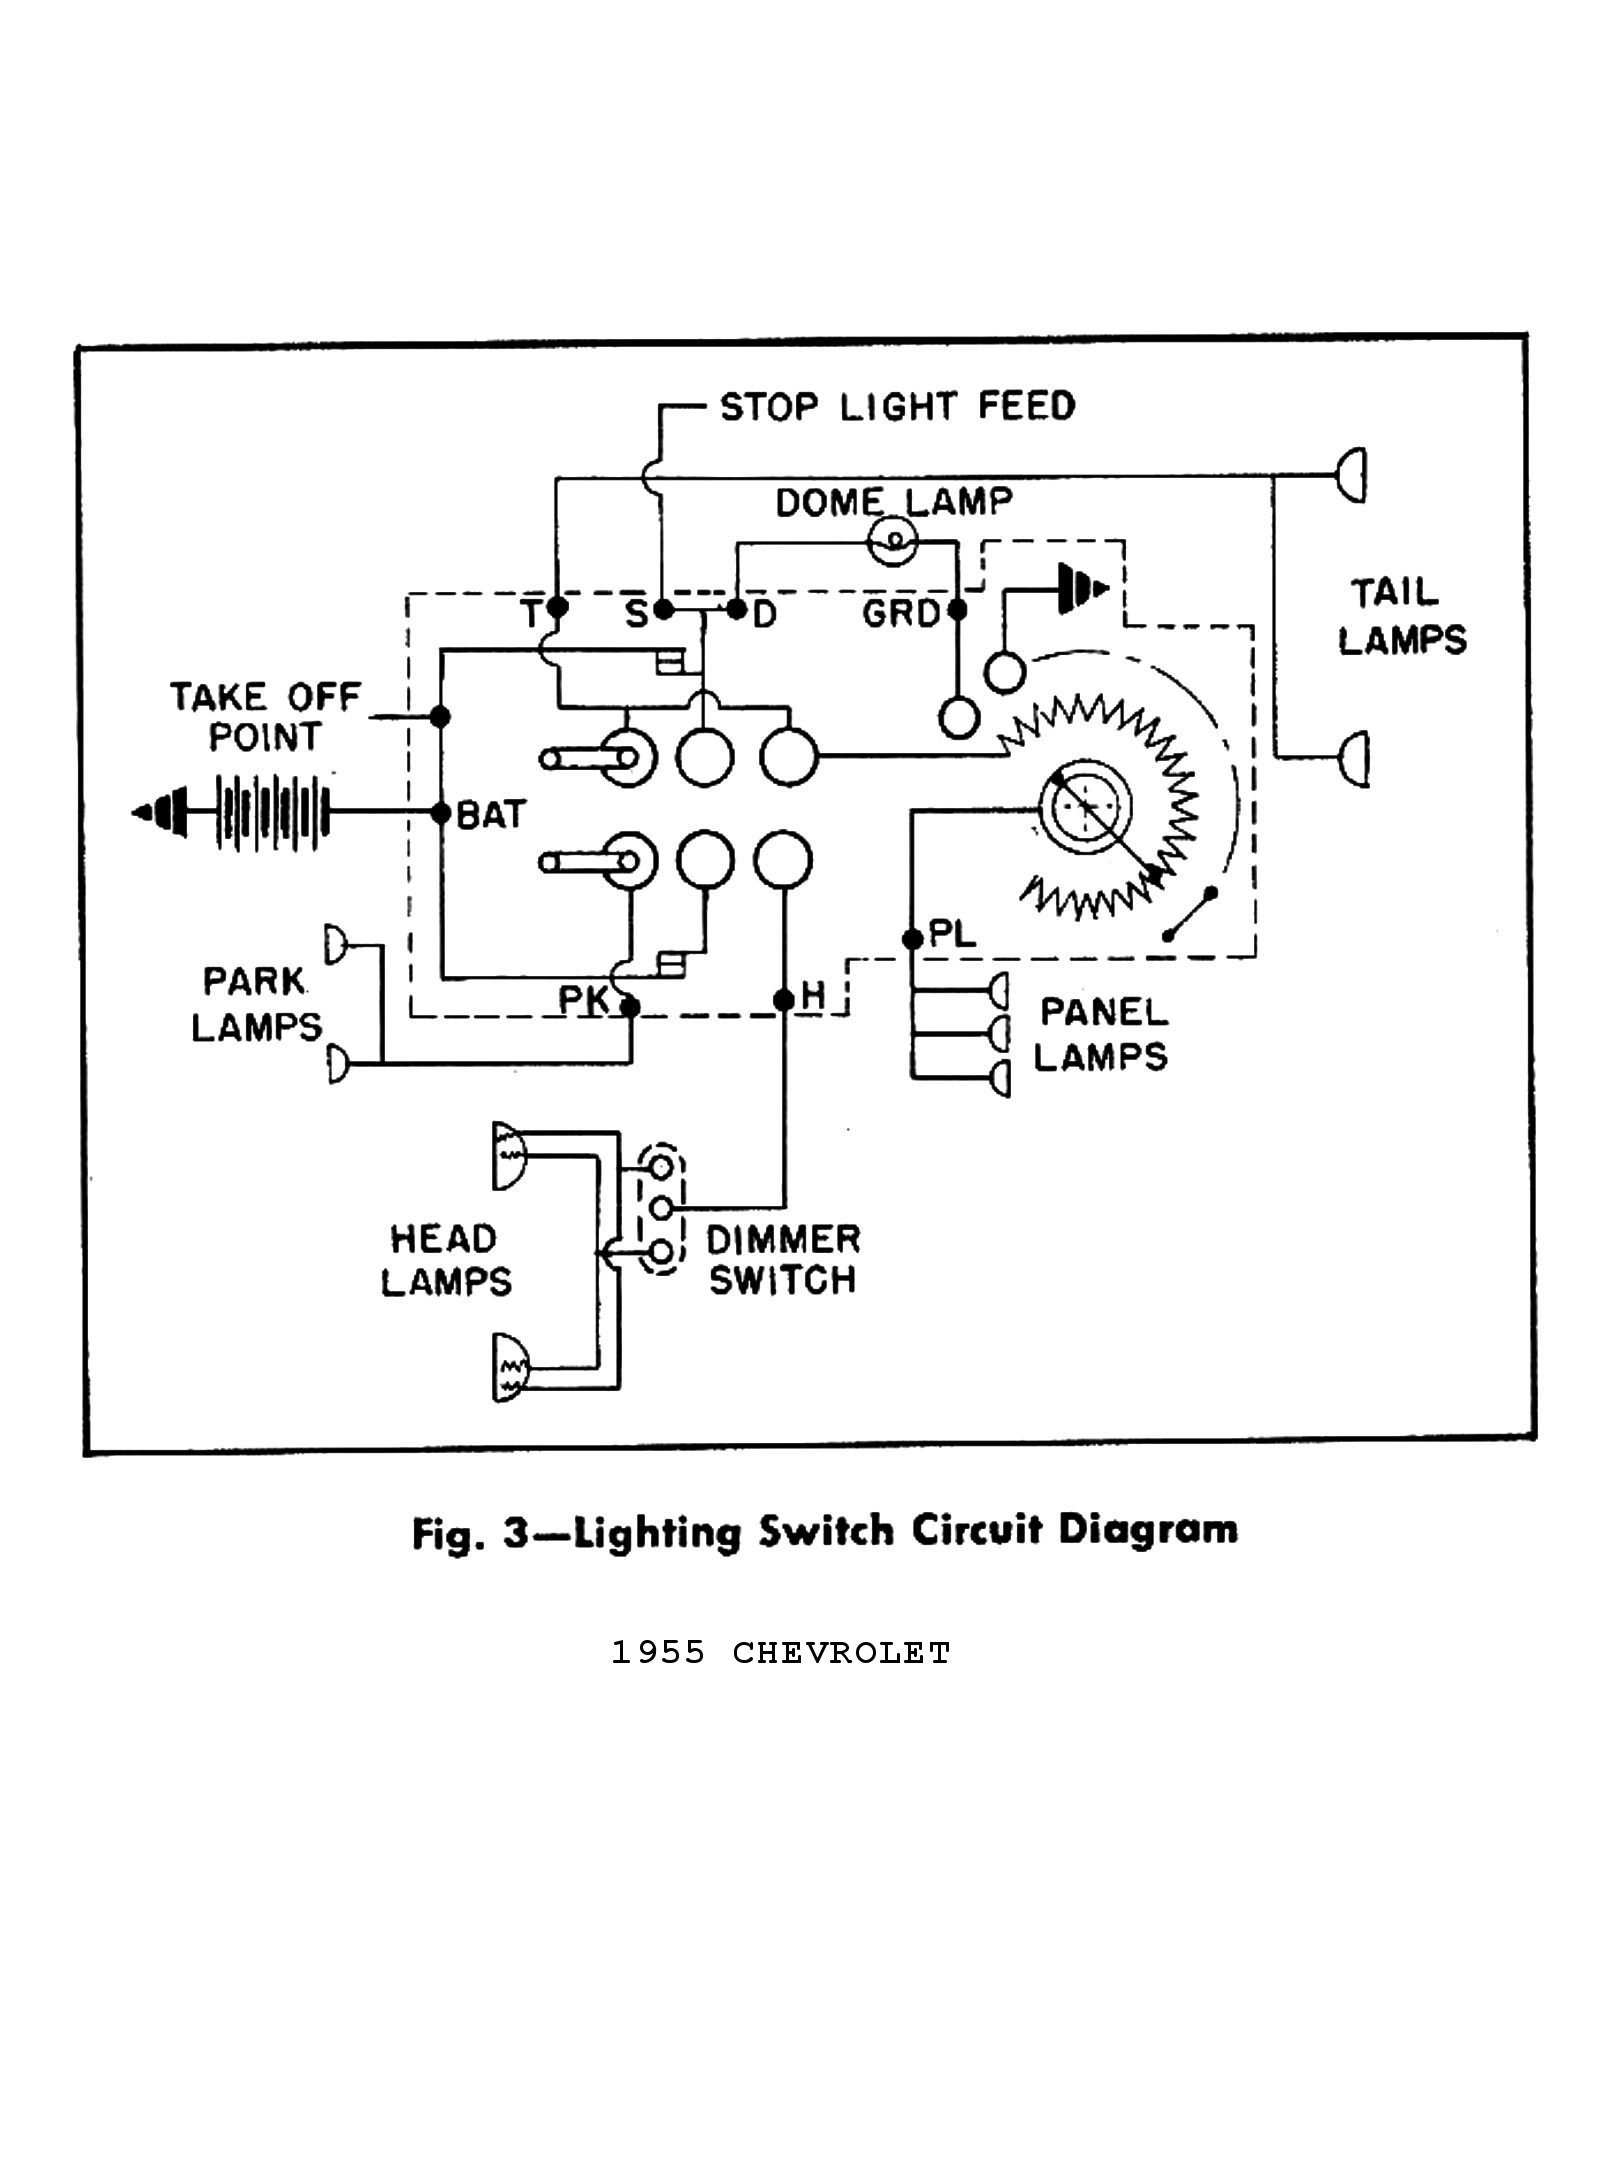 1955 Truck Wiring Diagrams · 1955 Electric Windows & Seats · 1955 Lighting  Switch Circuit